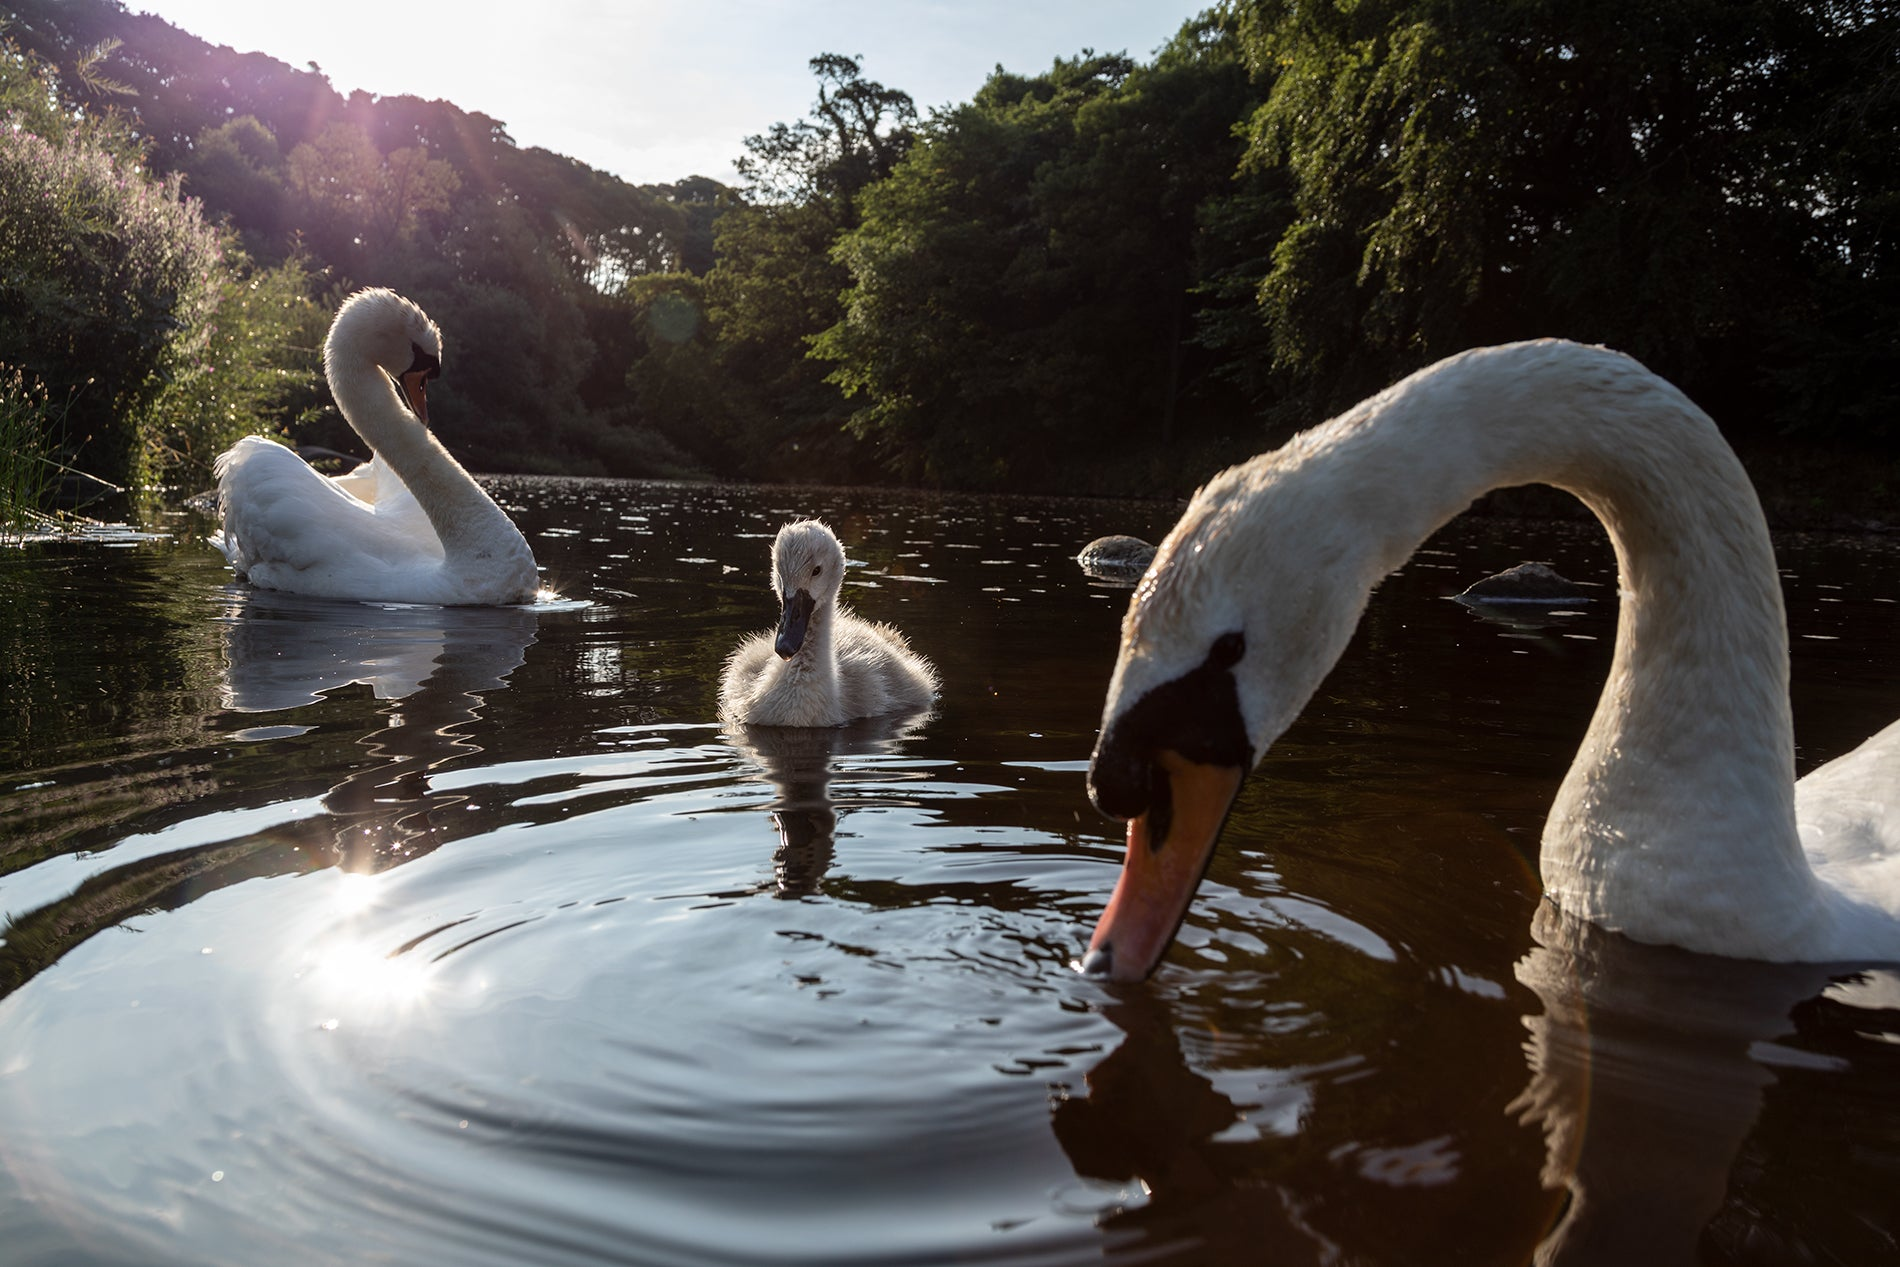 Swans on the River Wharfe